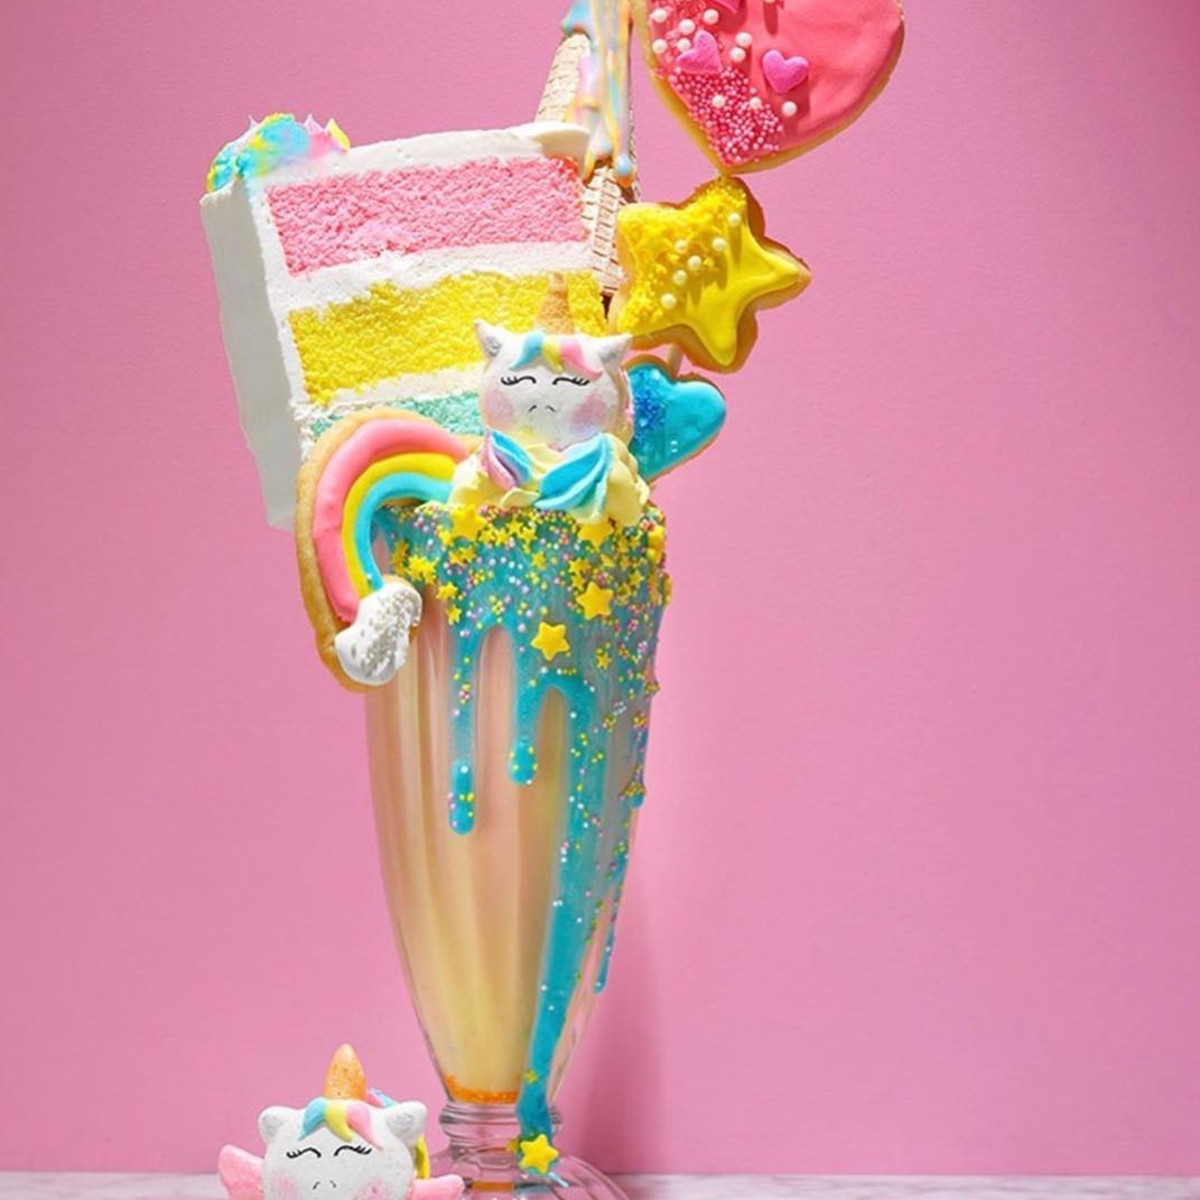 Magical Dessert bar unicorn milkshake